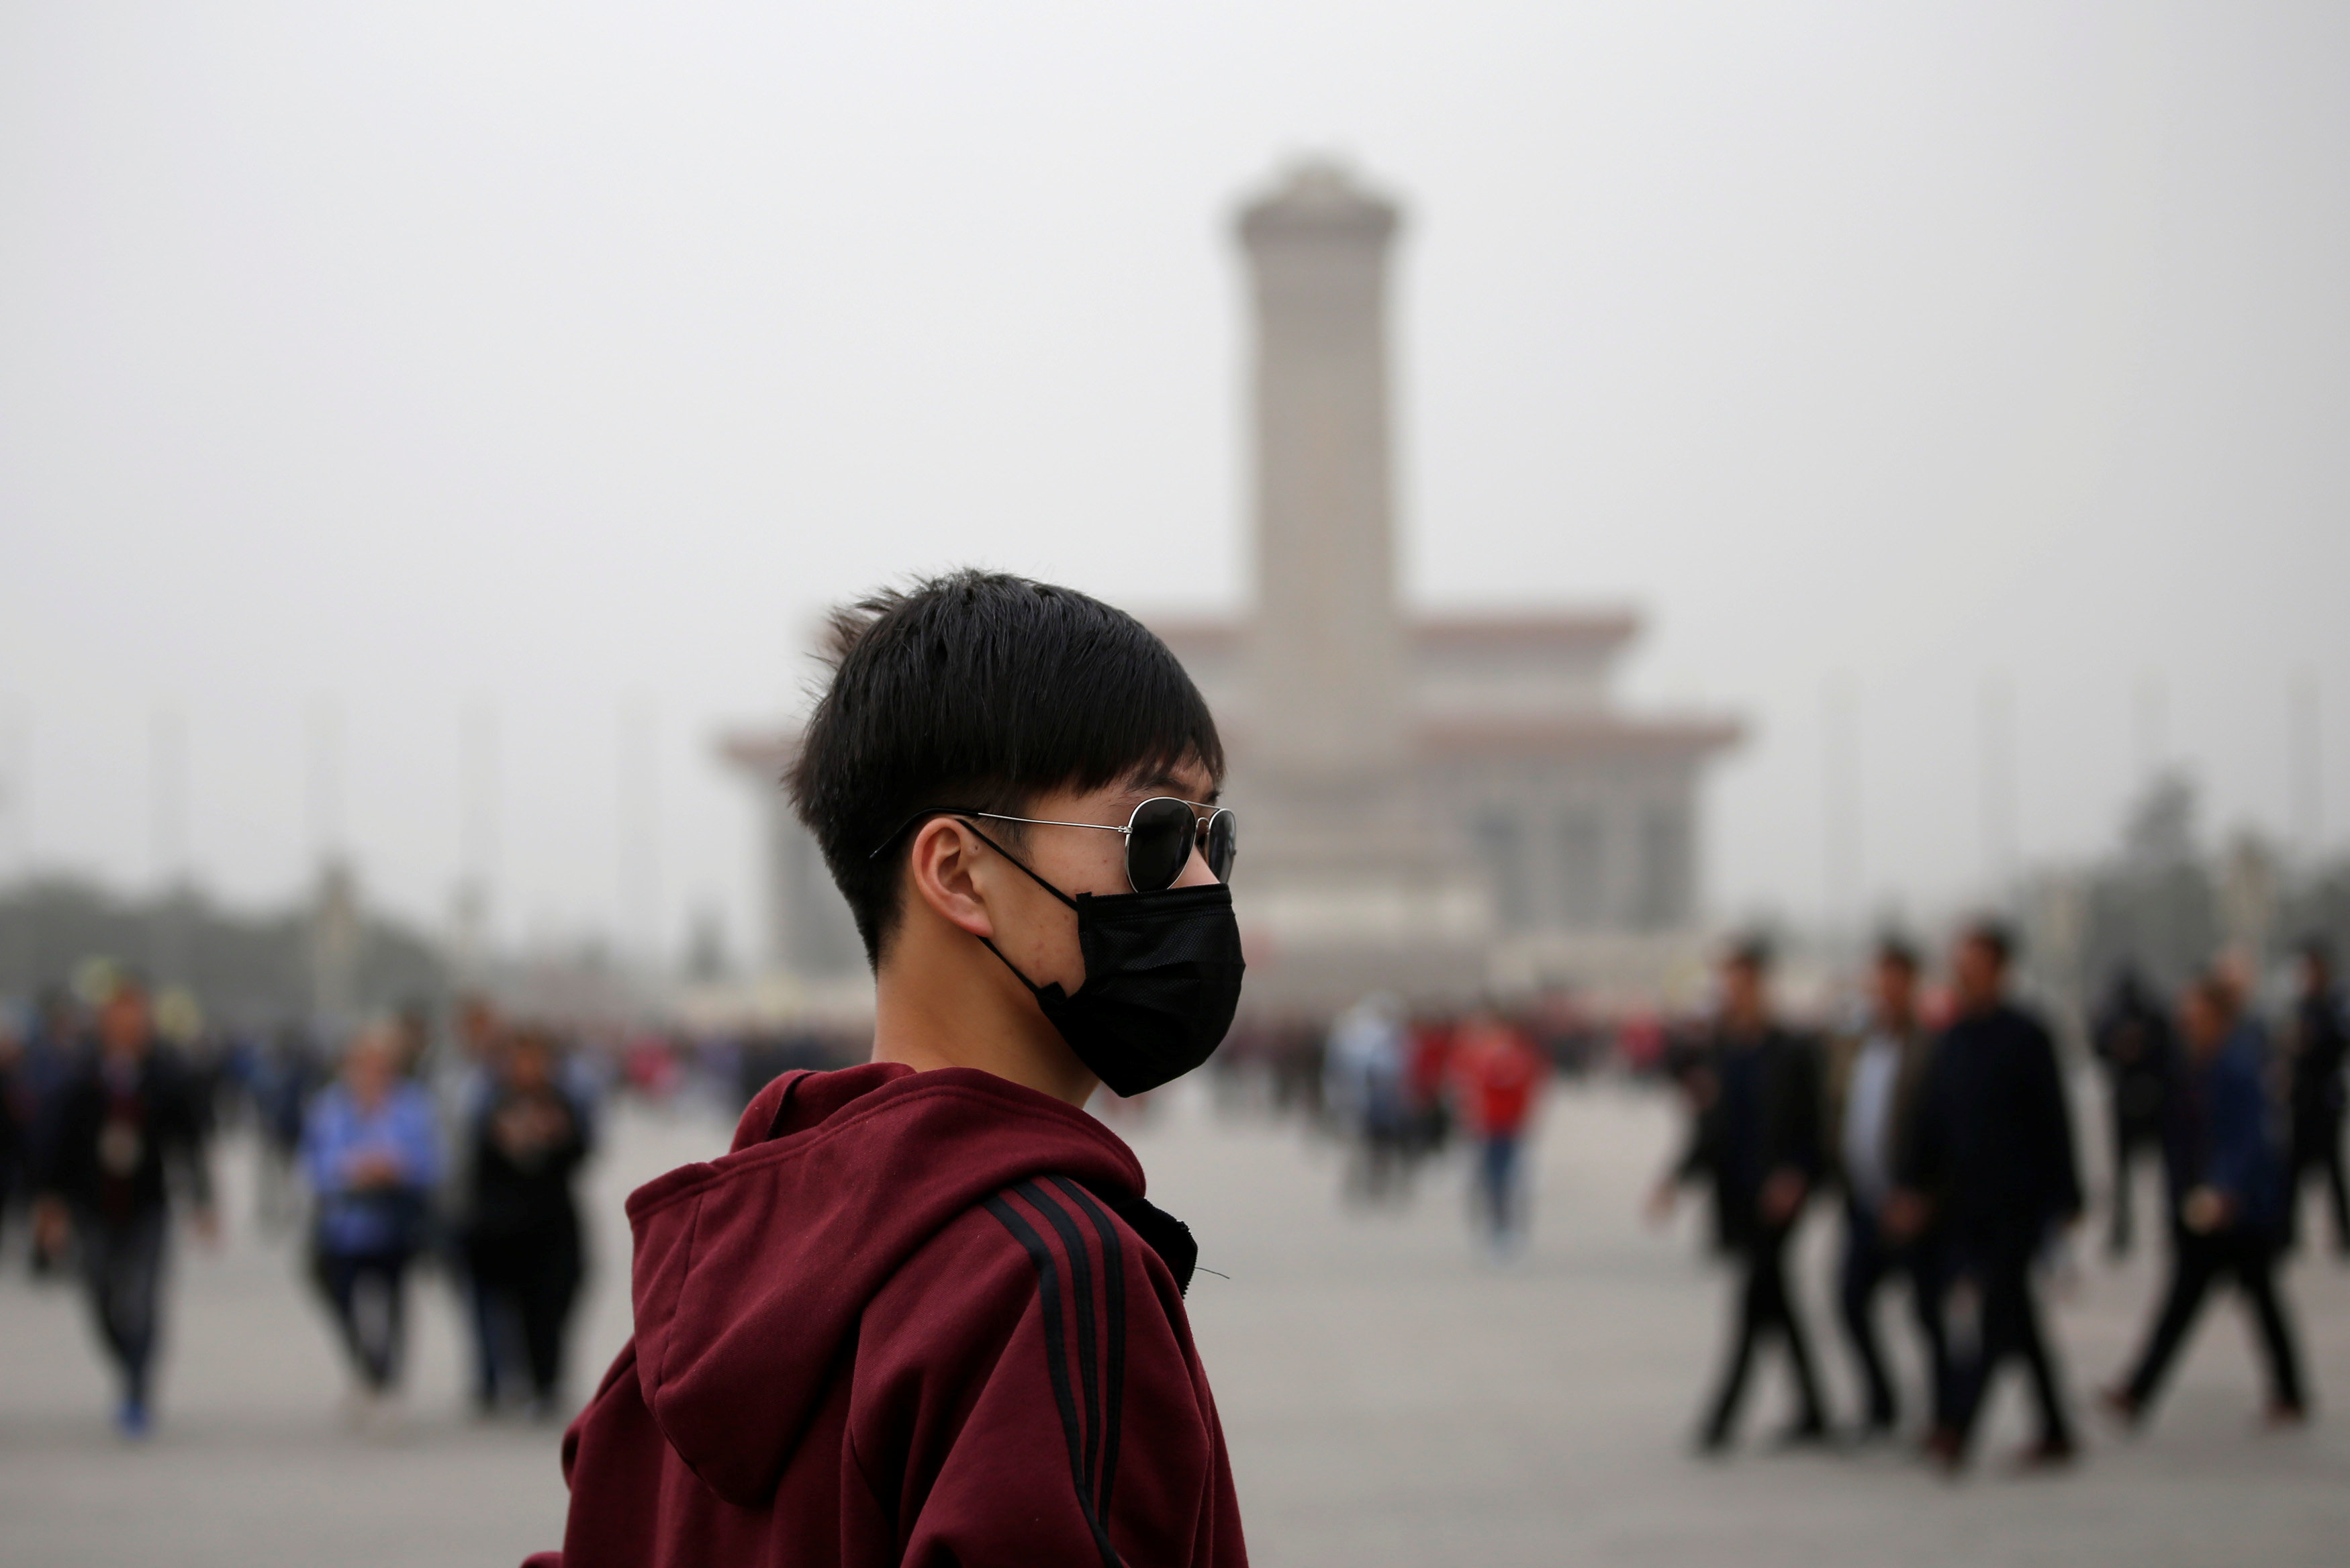 A man wearing a mask visits at Tiananmen Square as a dust storm hits Beijing, China March 28, 2018. REUTERS/Jason Lee